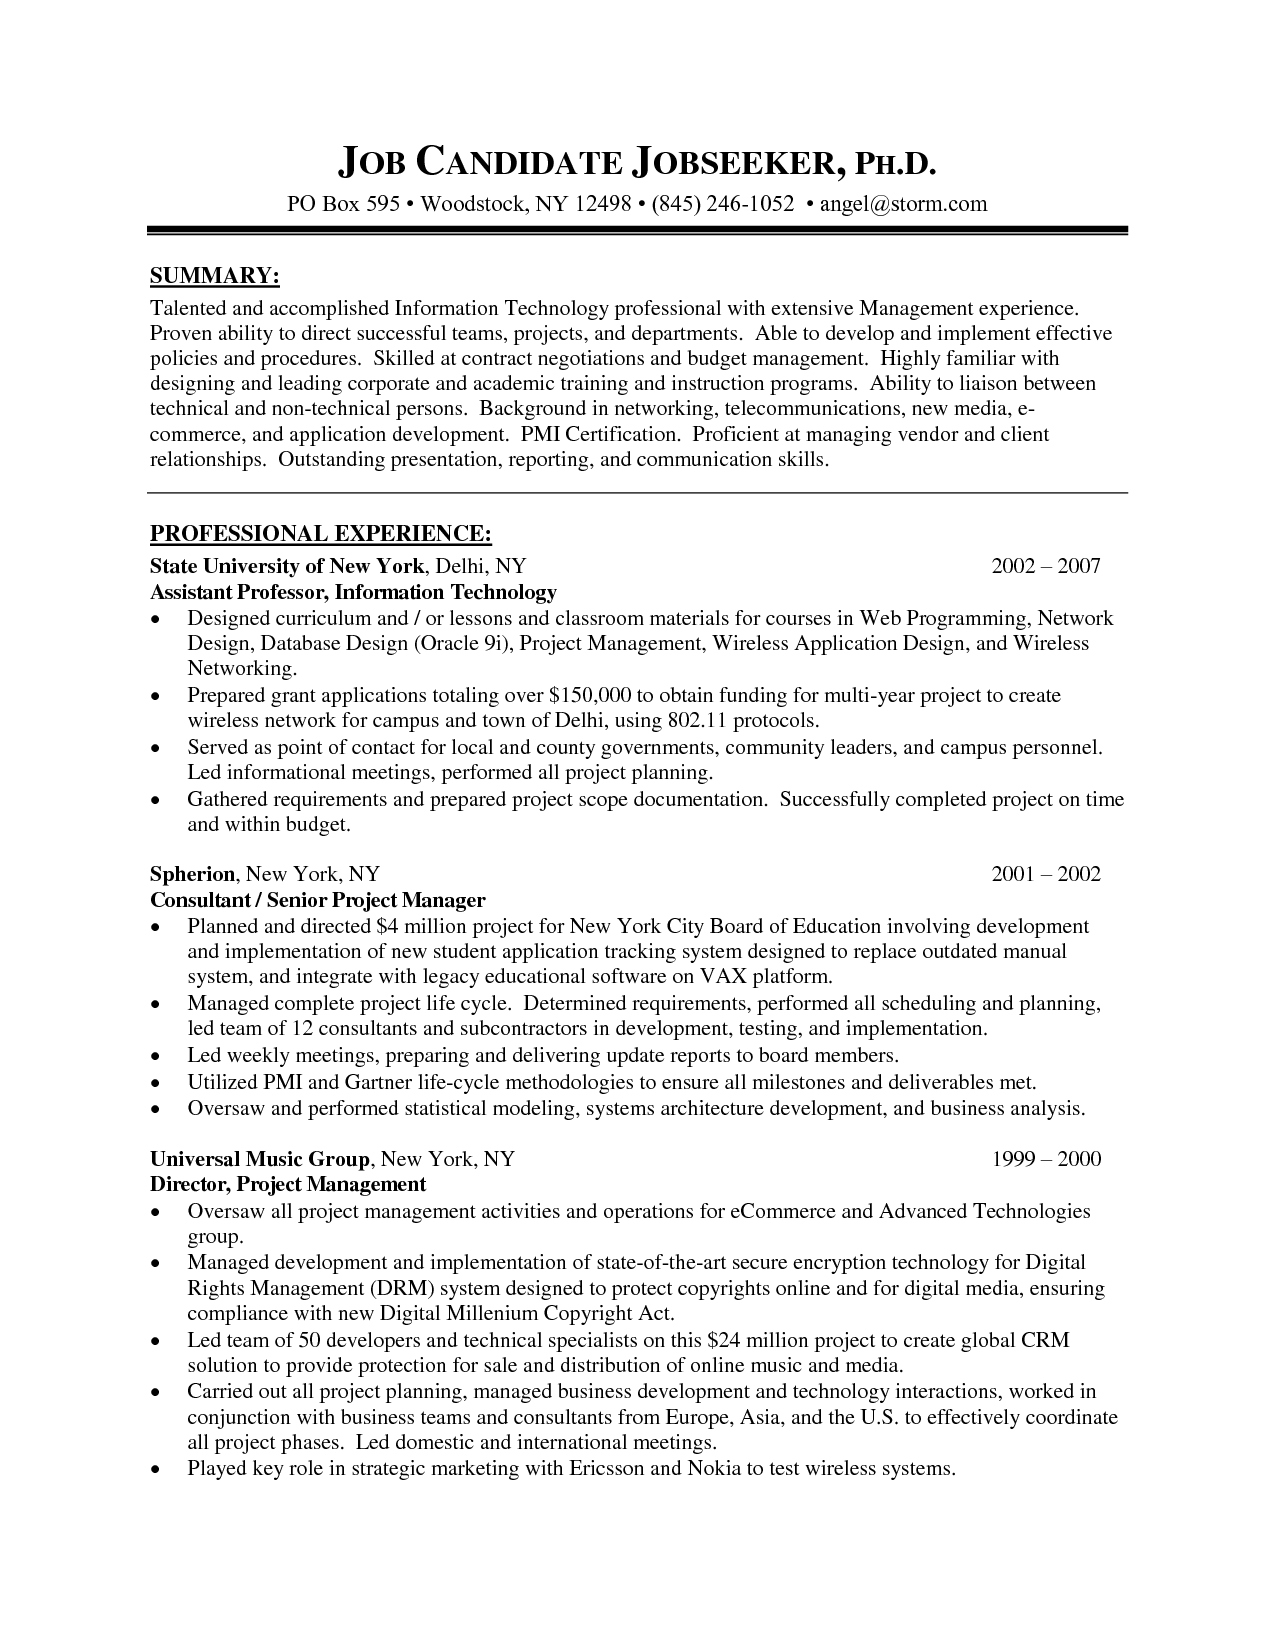 Manager Resume Free Sample Senior Project With Summary Examples Compare  Writing Services Find Local  Entry Level Project Manager